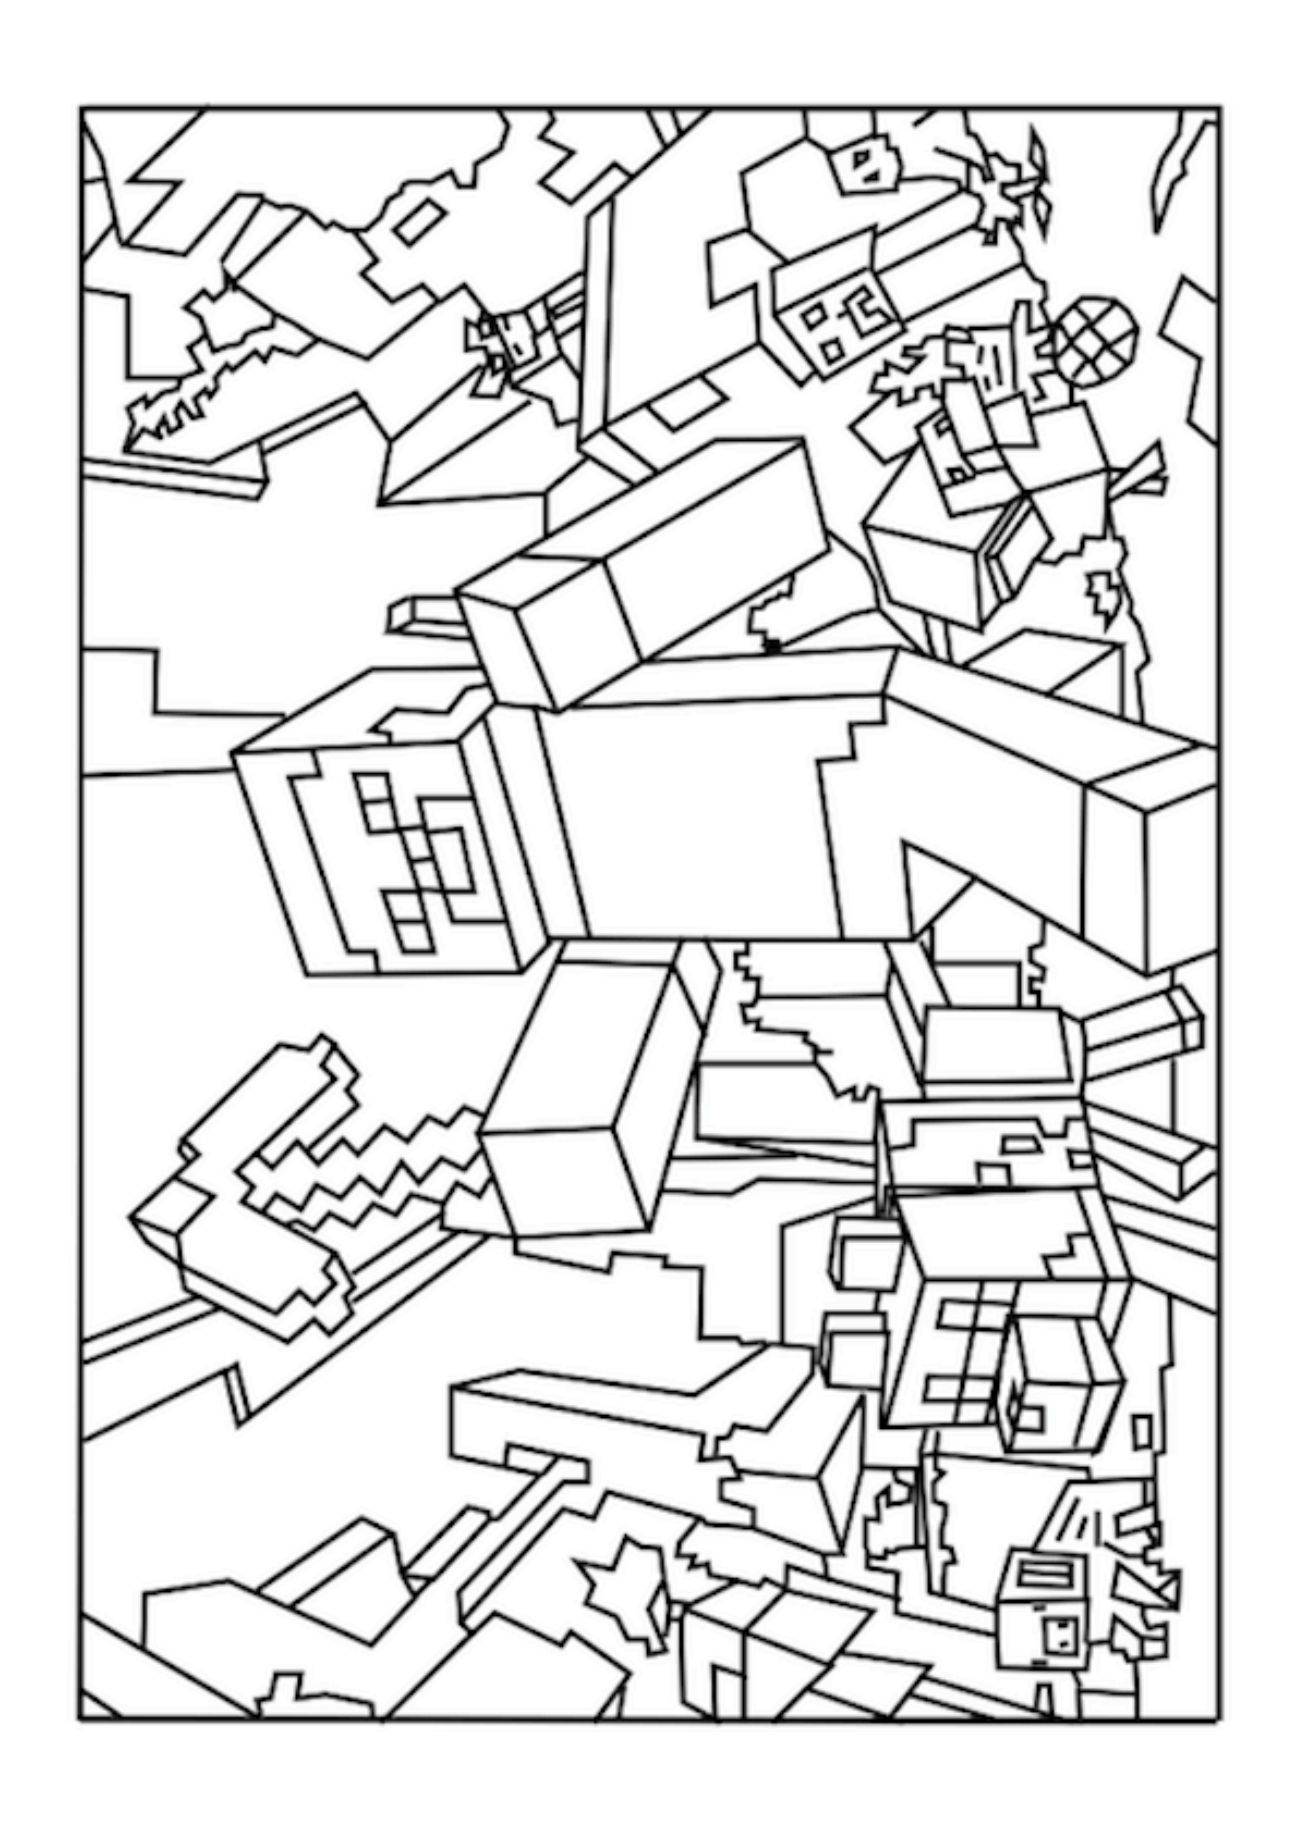 coloring pages minecraft minecraft free to color for kids minecraft kids coloring minecraft pages coloring